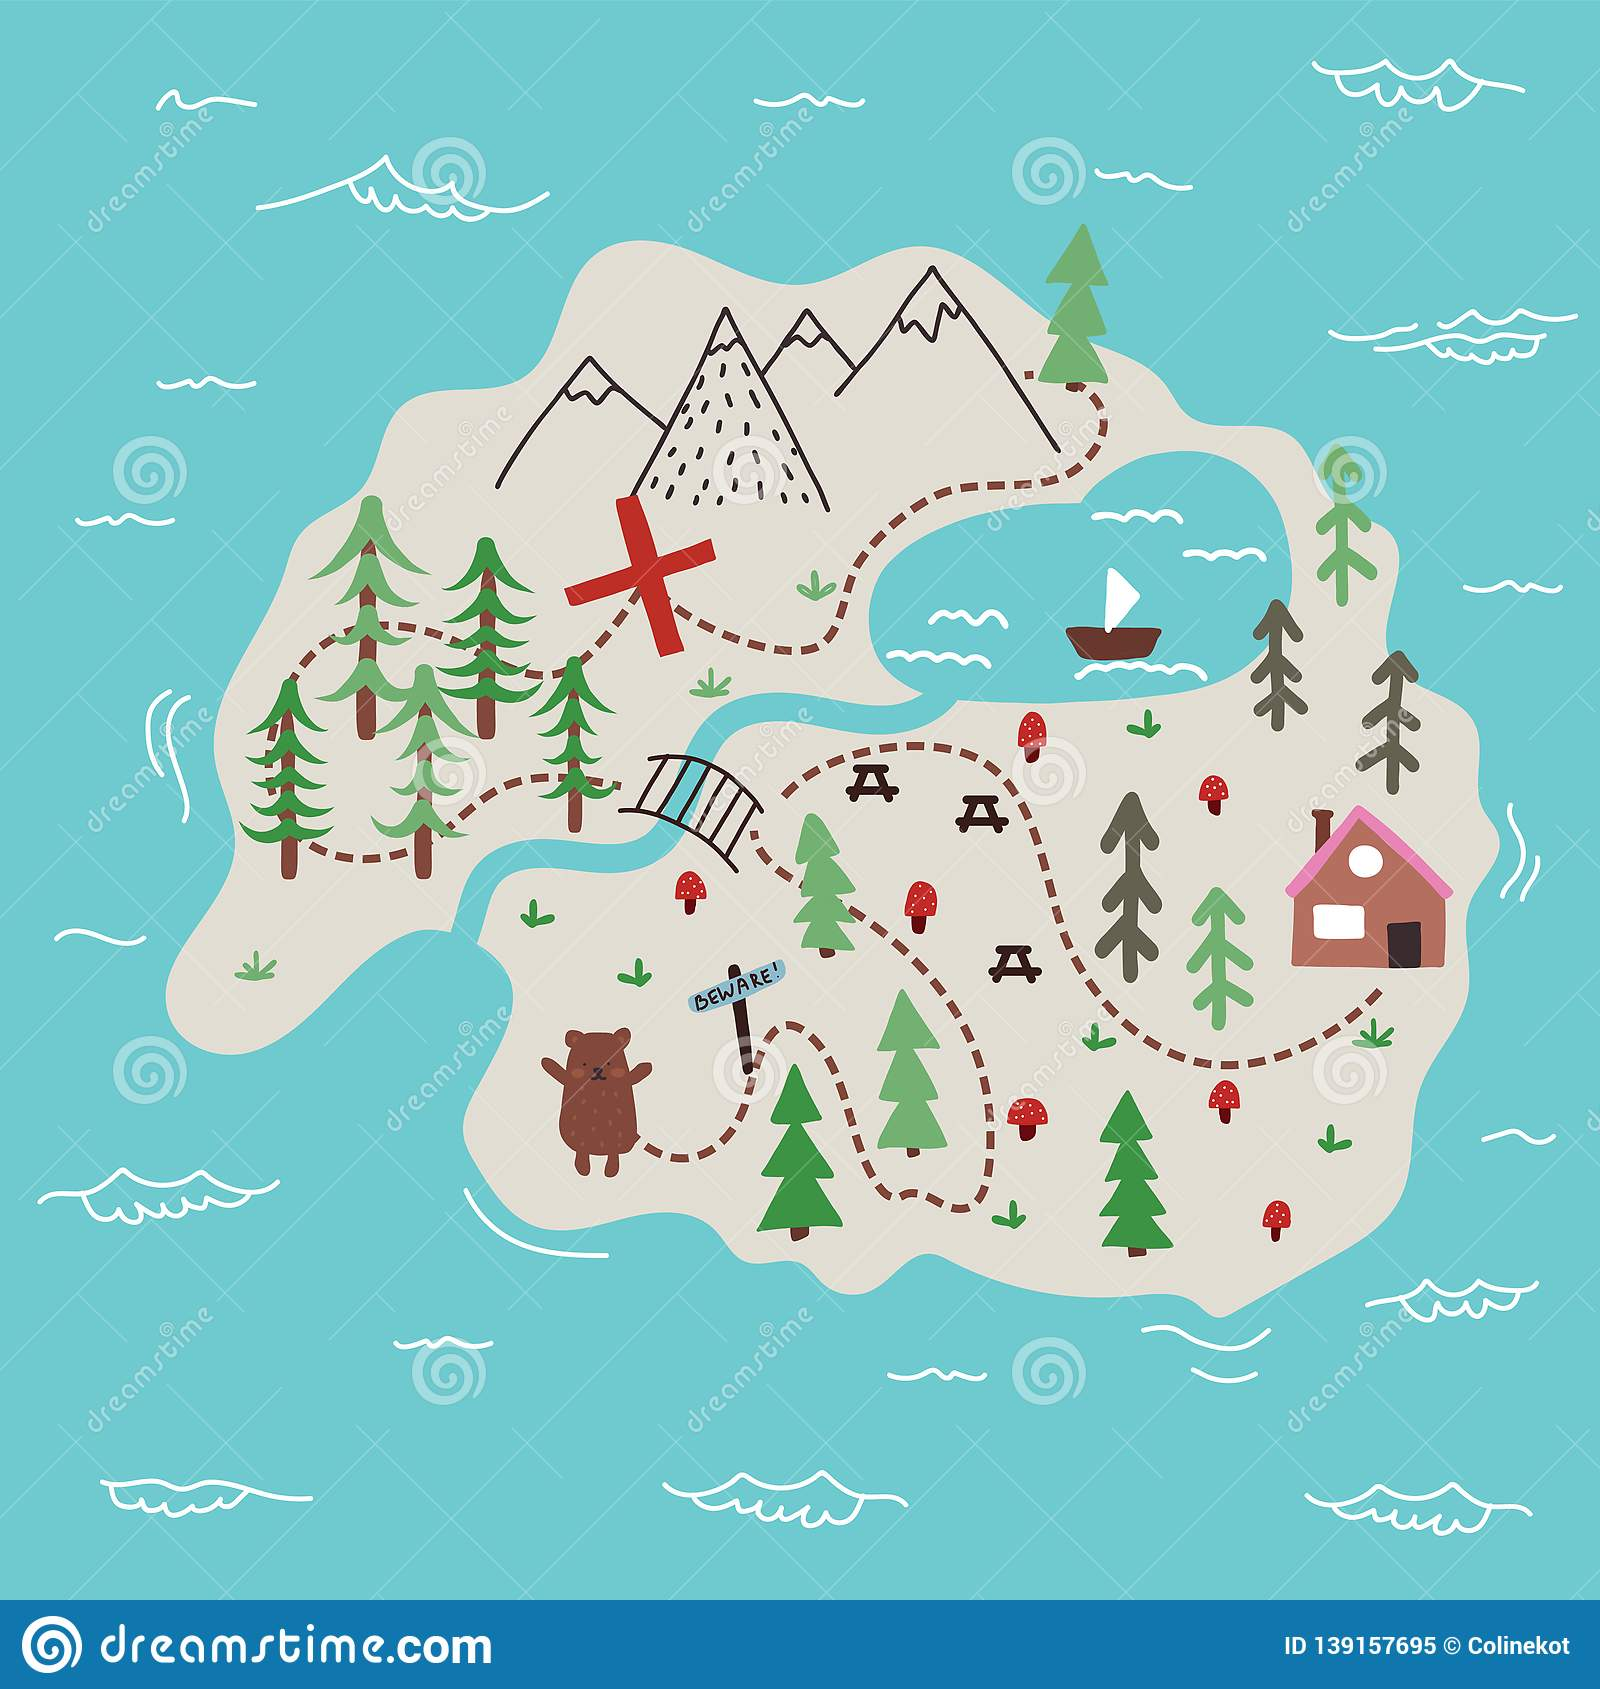 Map Of An Island Vector Island Map Doodle Illustration Stock Vector   Illustration